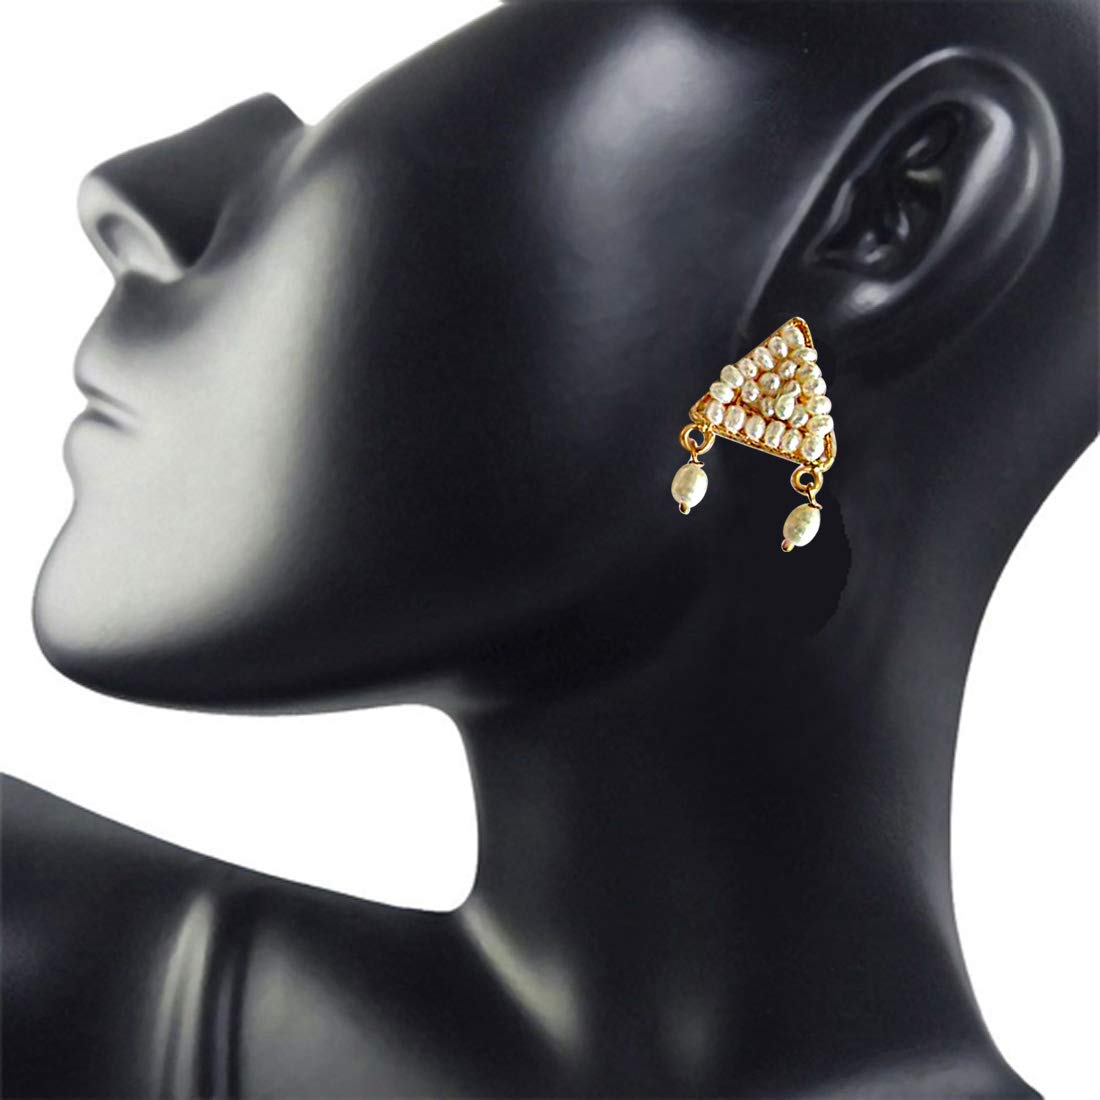 Perfect Pearl Beauty - Real Freshwater Pearl & Gold Plated Triangular Shaped Earring for Women (SE47)